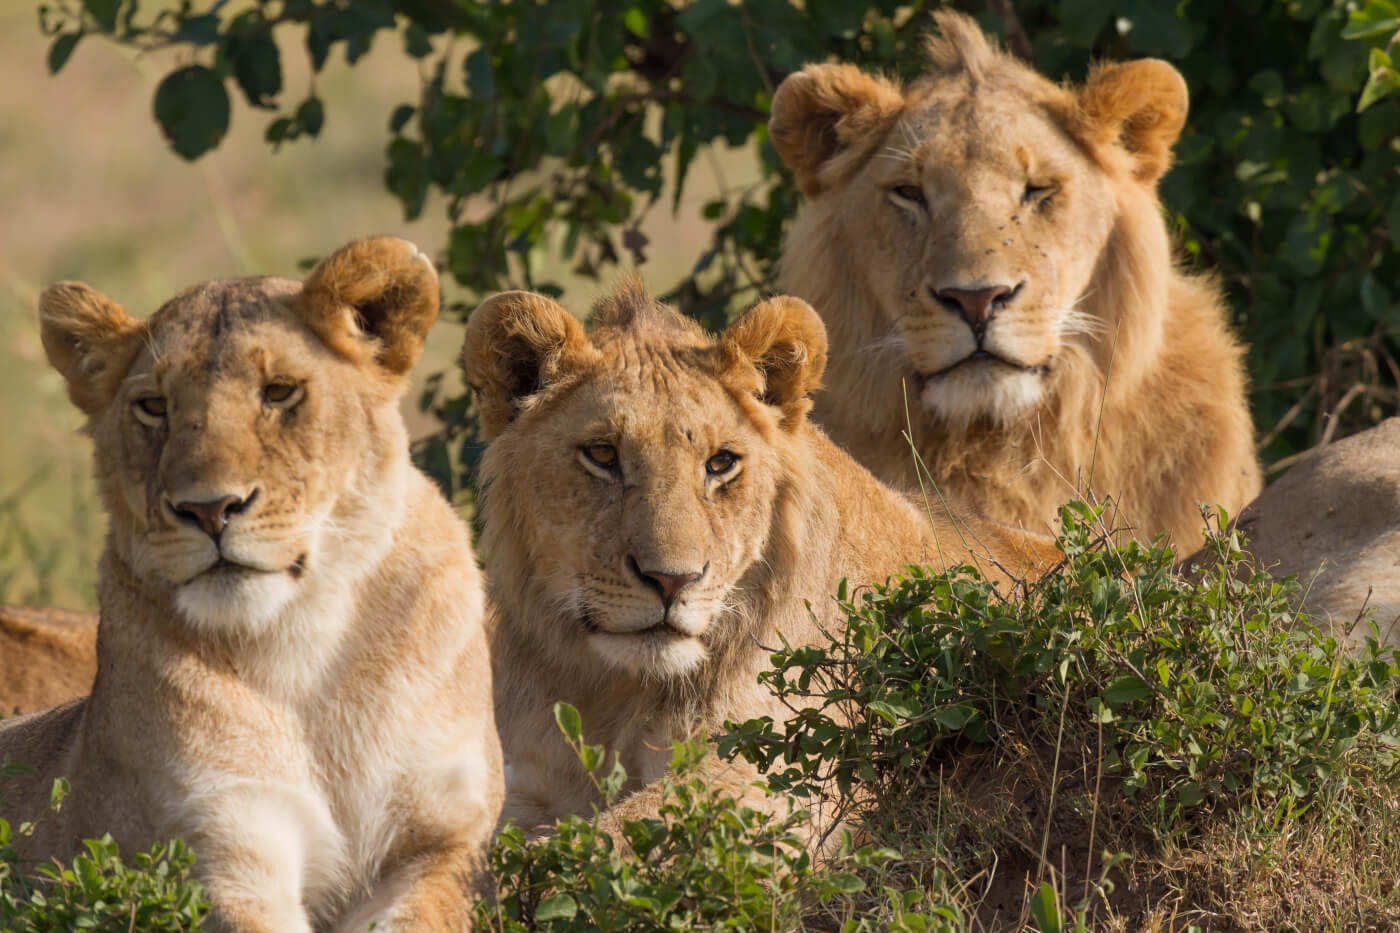 Hunting Outfit's Buy-One-Get-One-Free Lions: Help End This | PETA